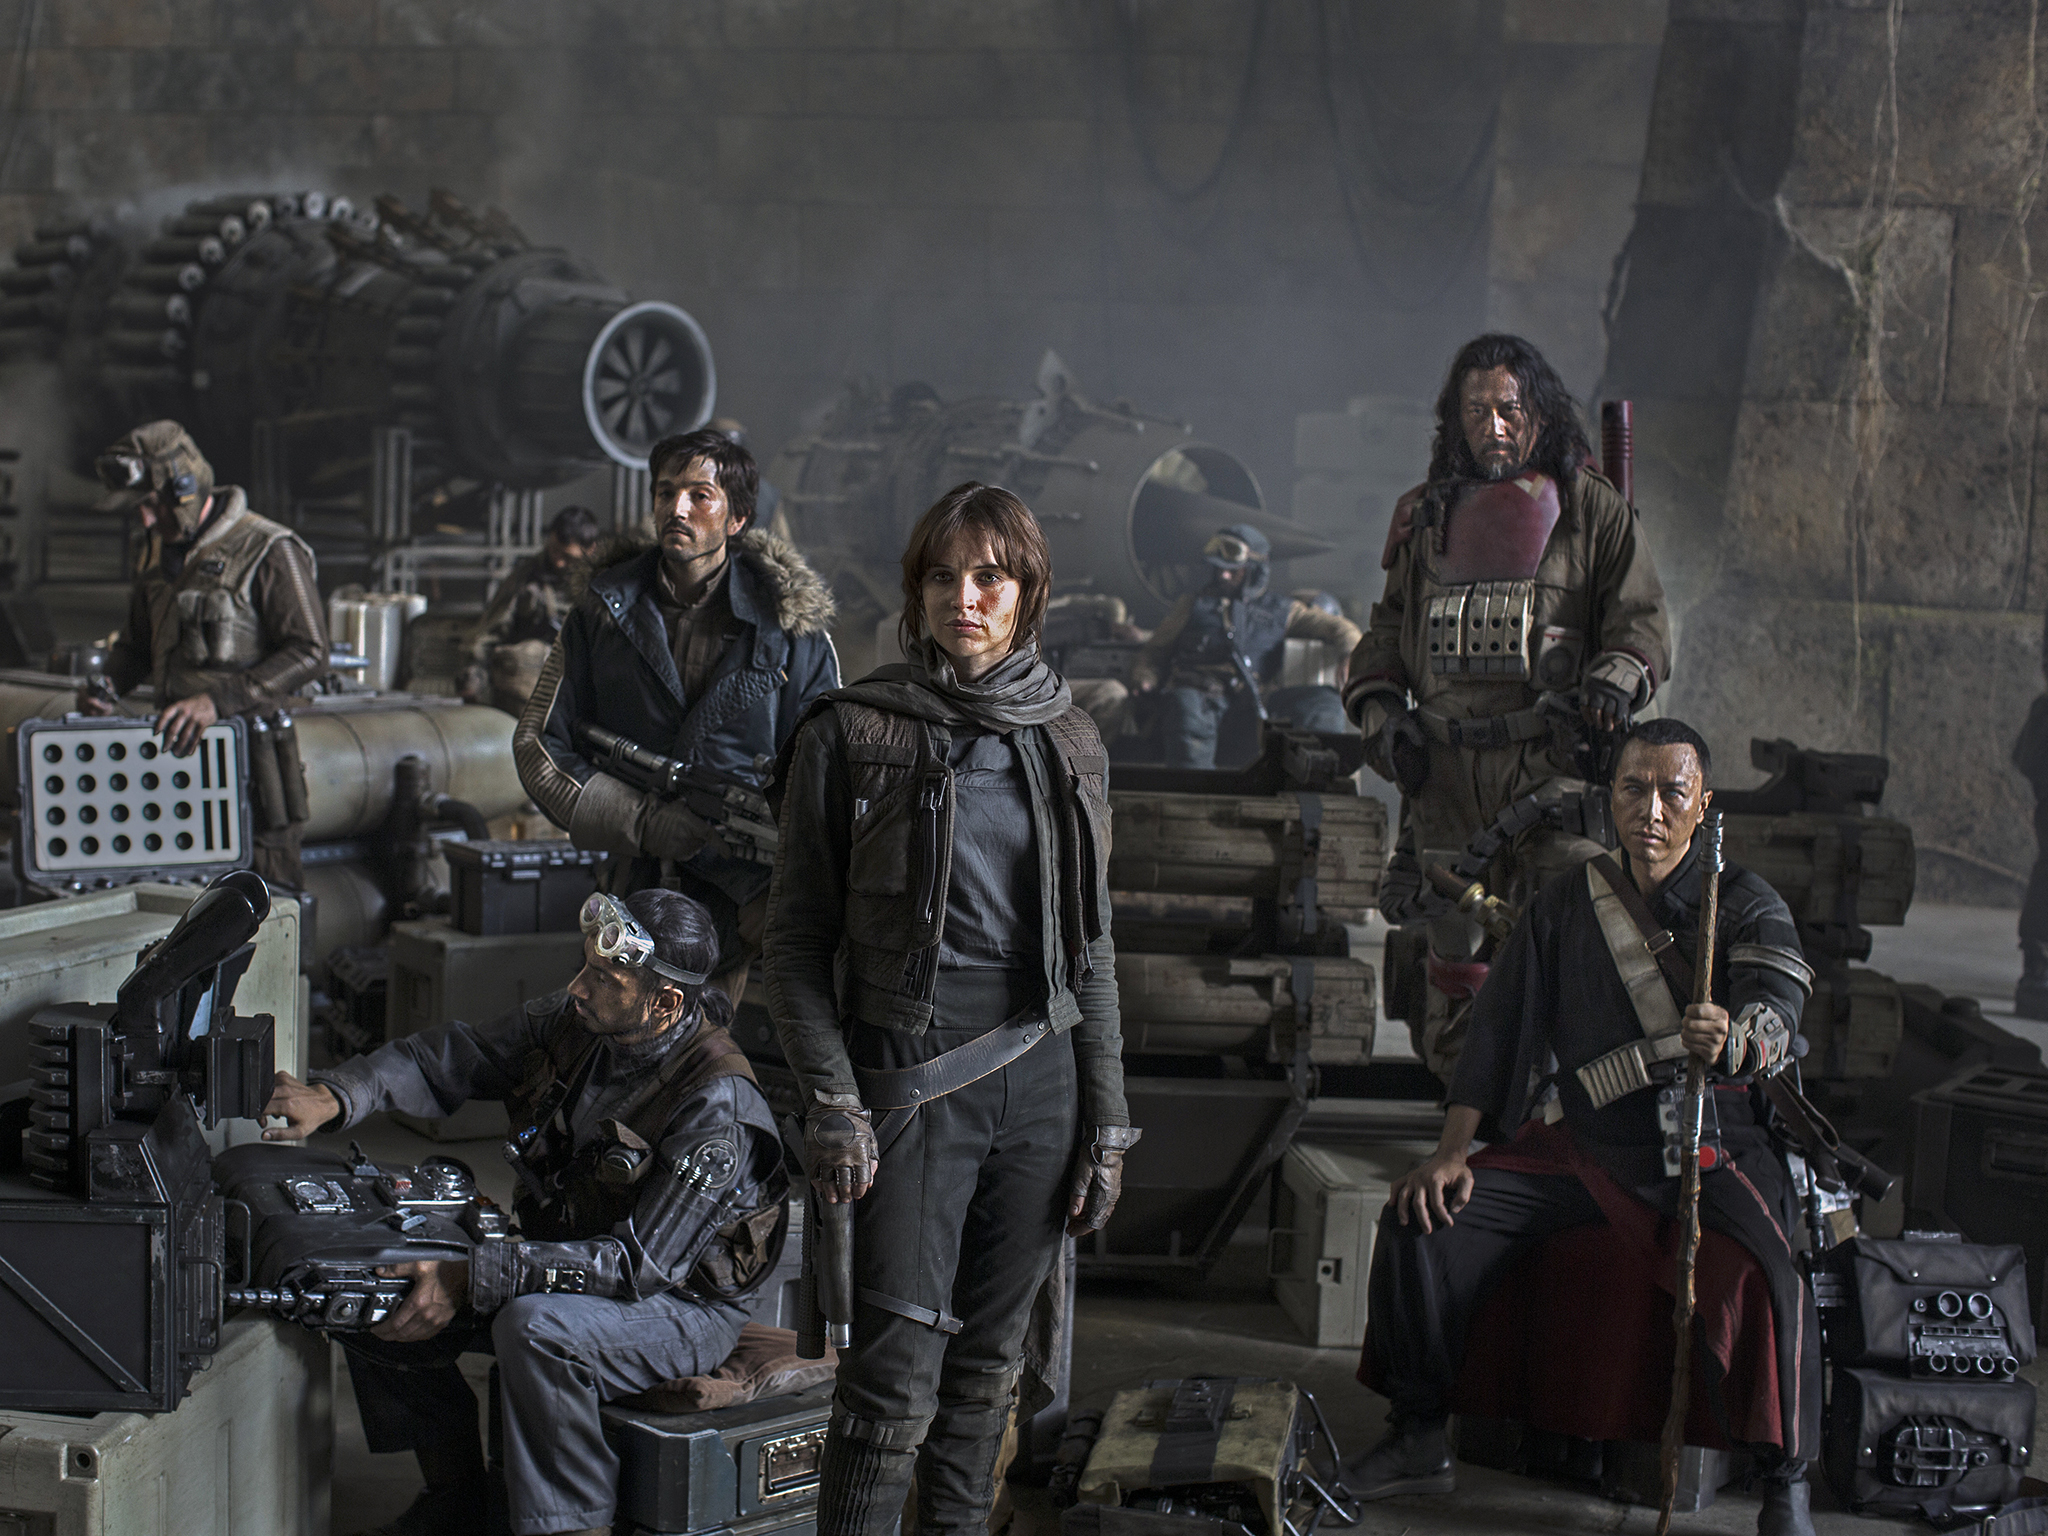 Rogue One Director Gareth Edwards Reveals How Star Wars Changed His Life